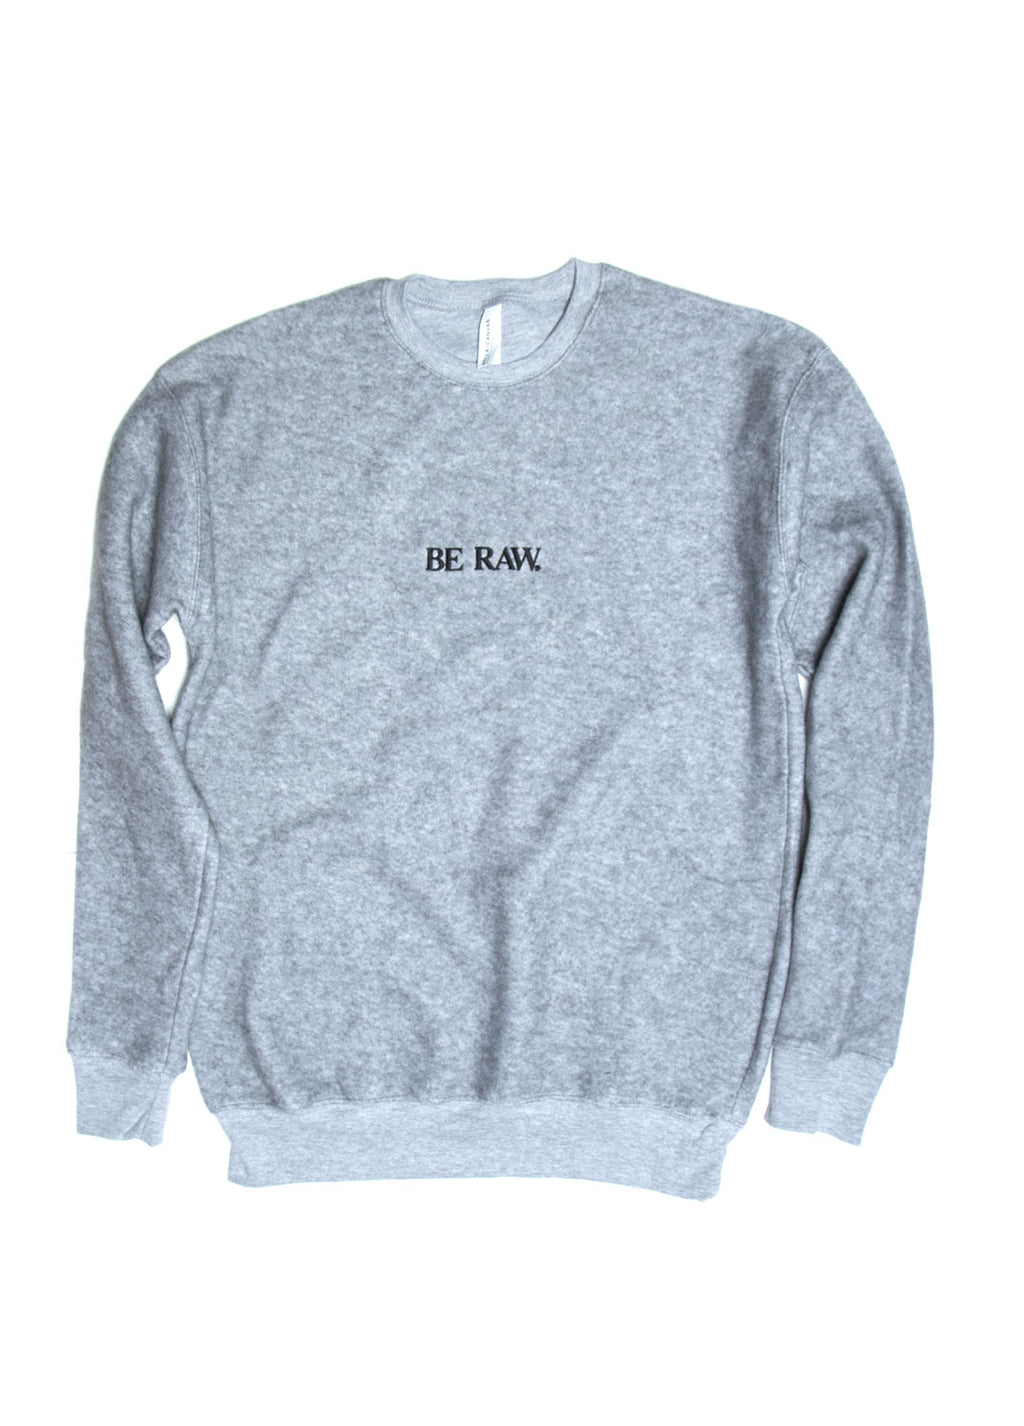 Be Raw - Sueded Fleece - Drop Shoulder Crewneck (Grey)